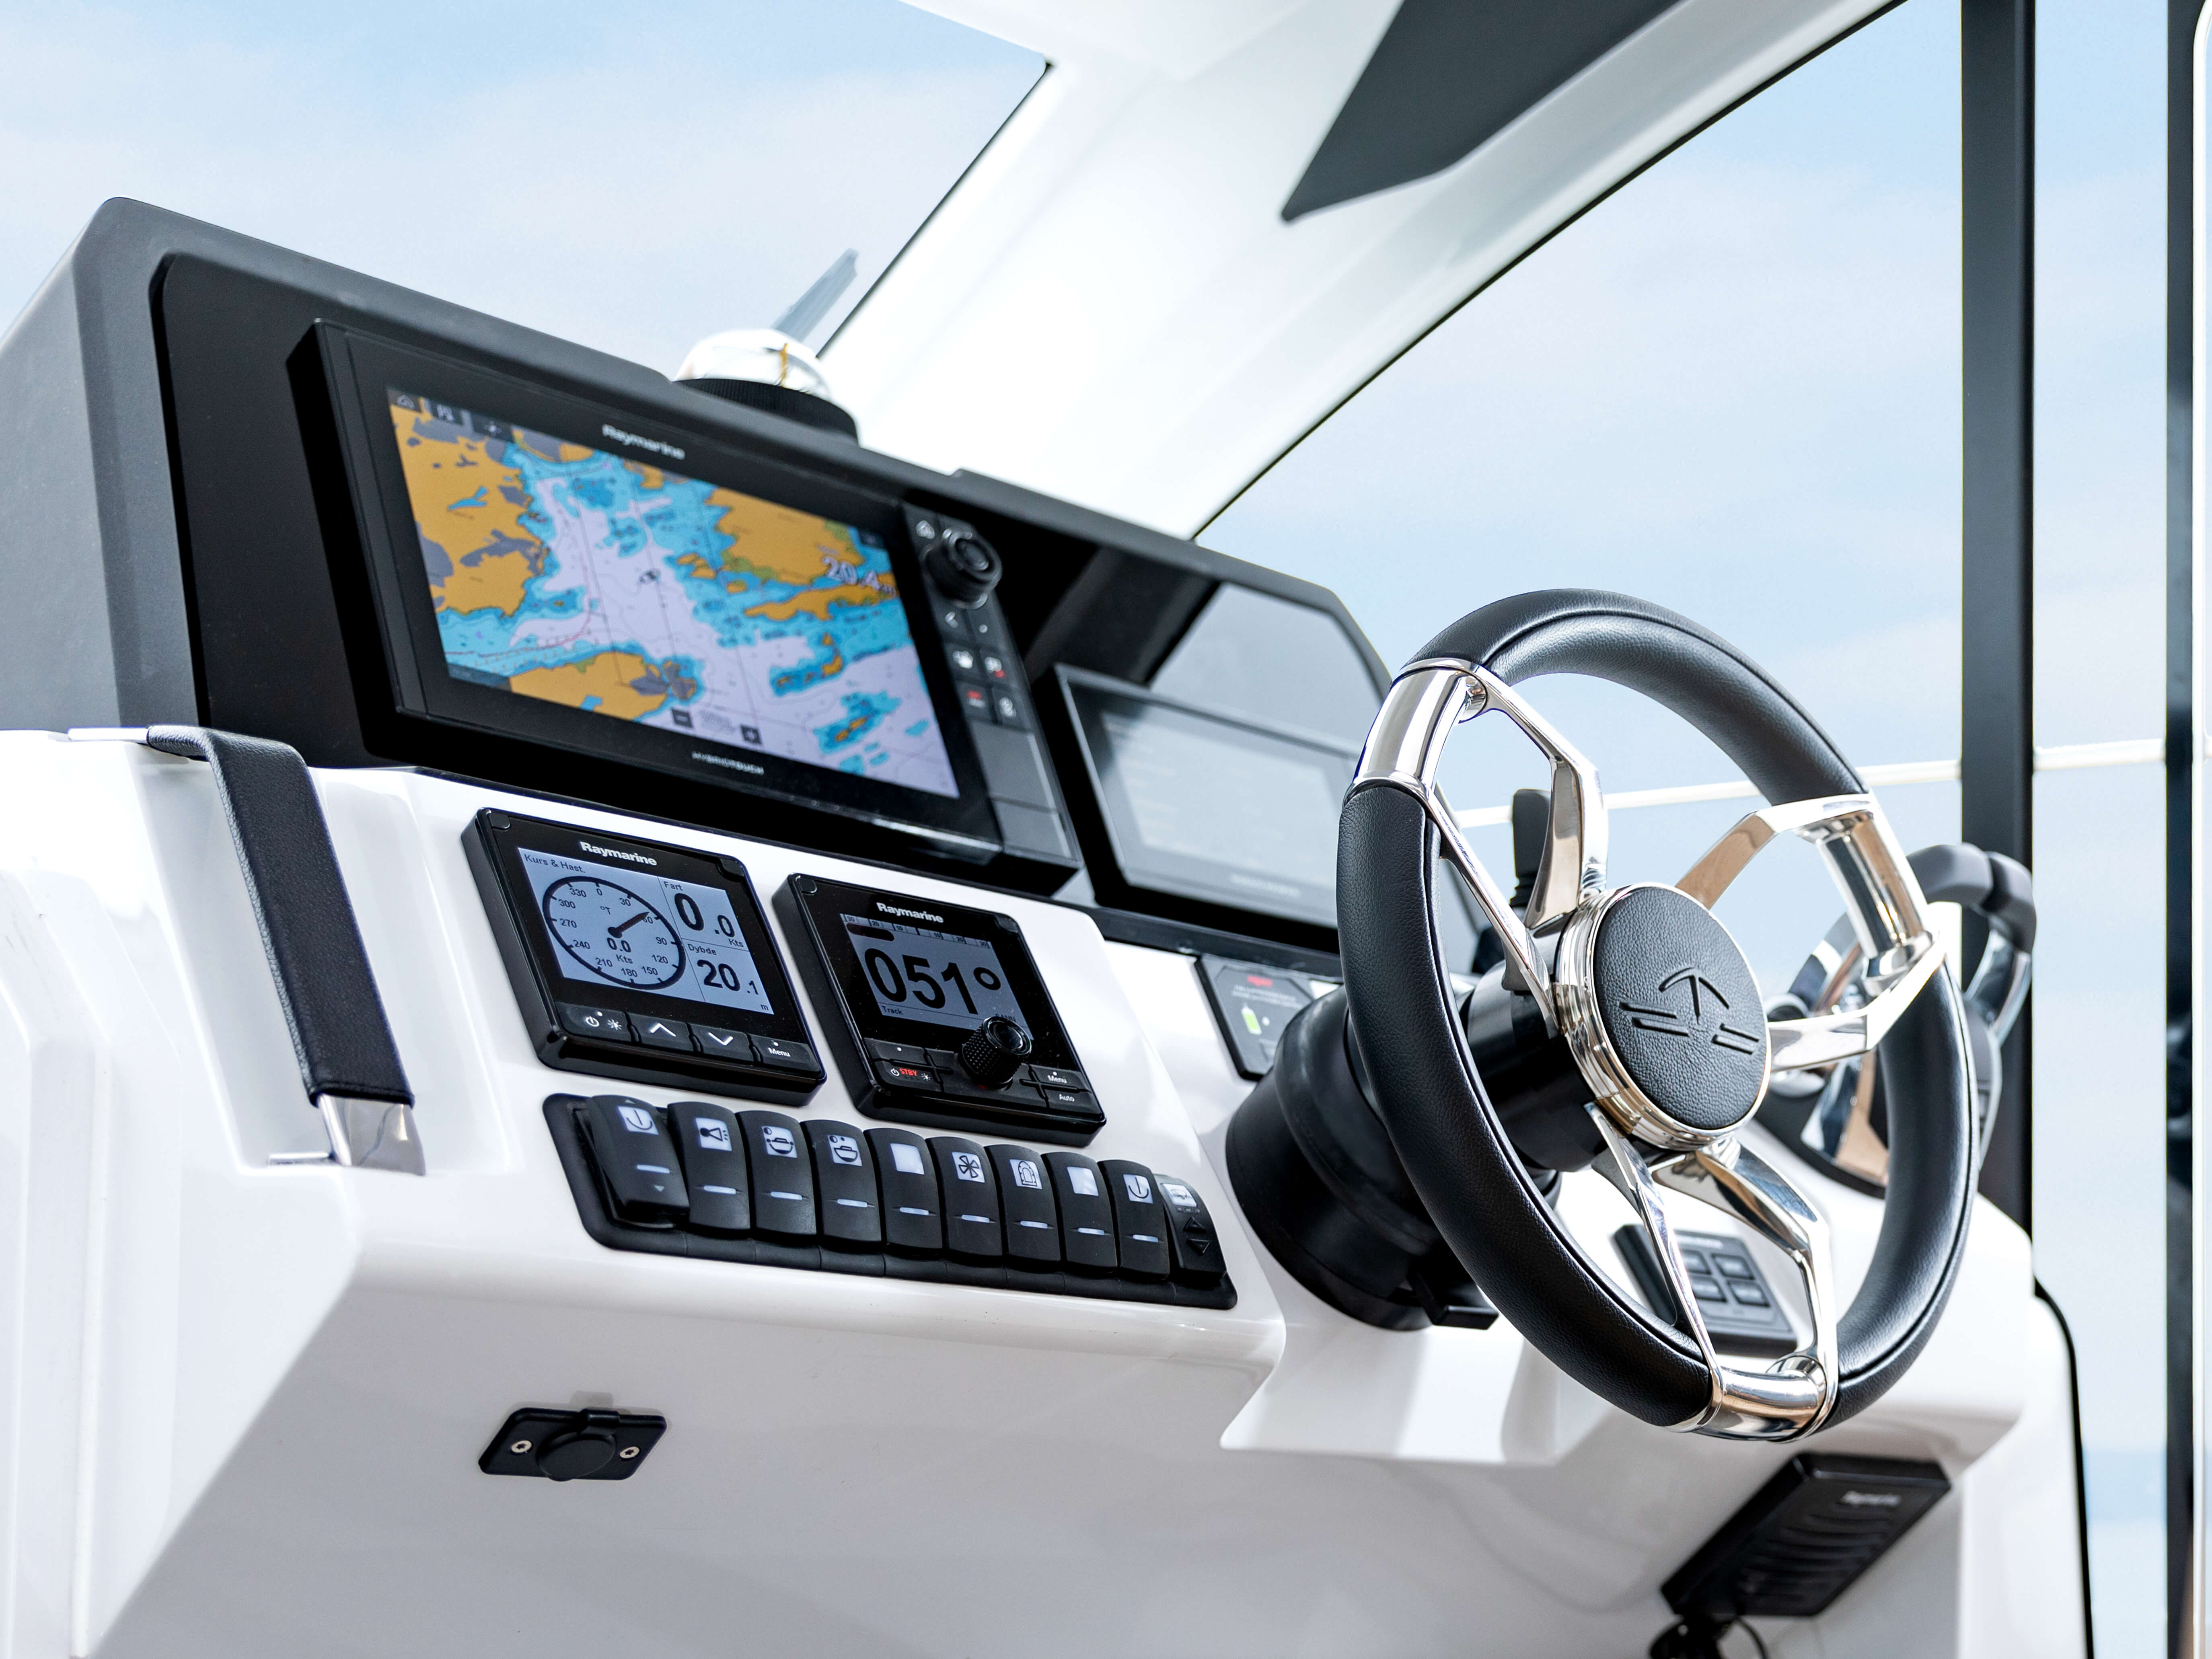 Sealine C390v helm | The controls are not only of the highest quality, but are positioned just where you intuitively expect to find them. | Sealine